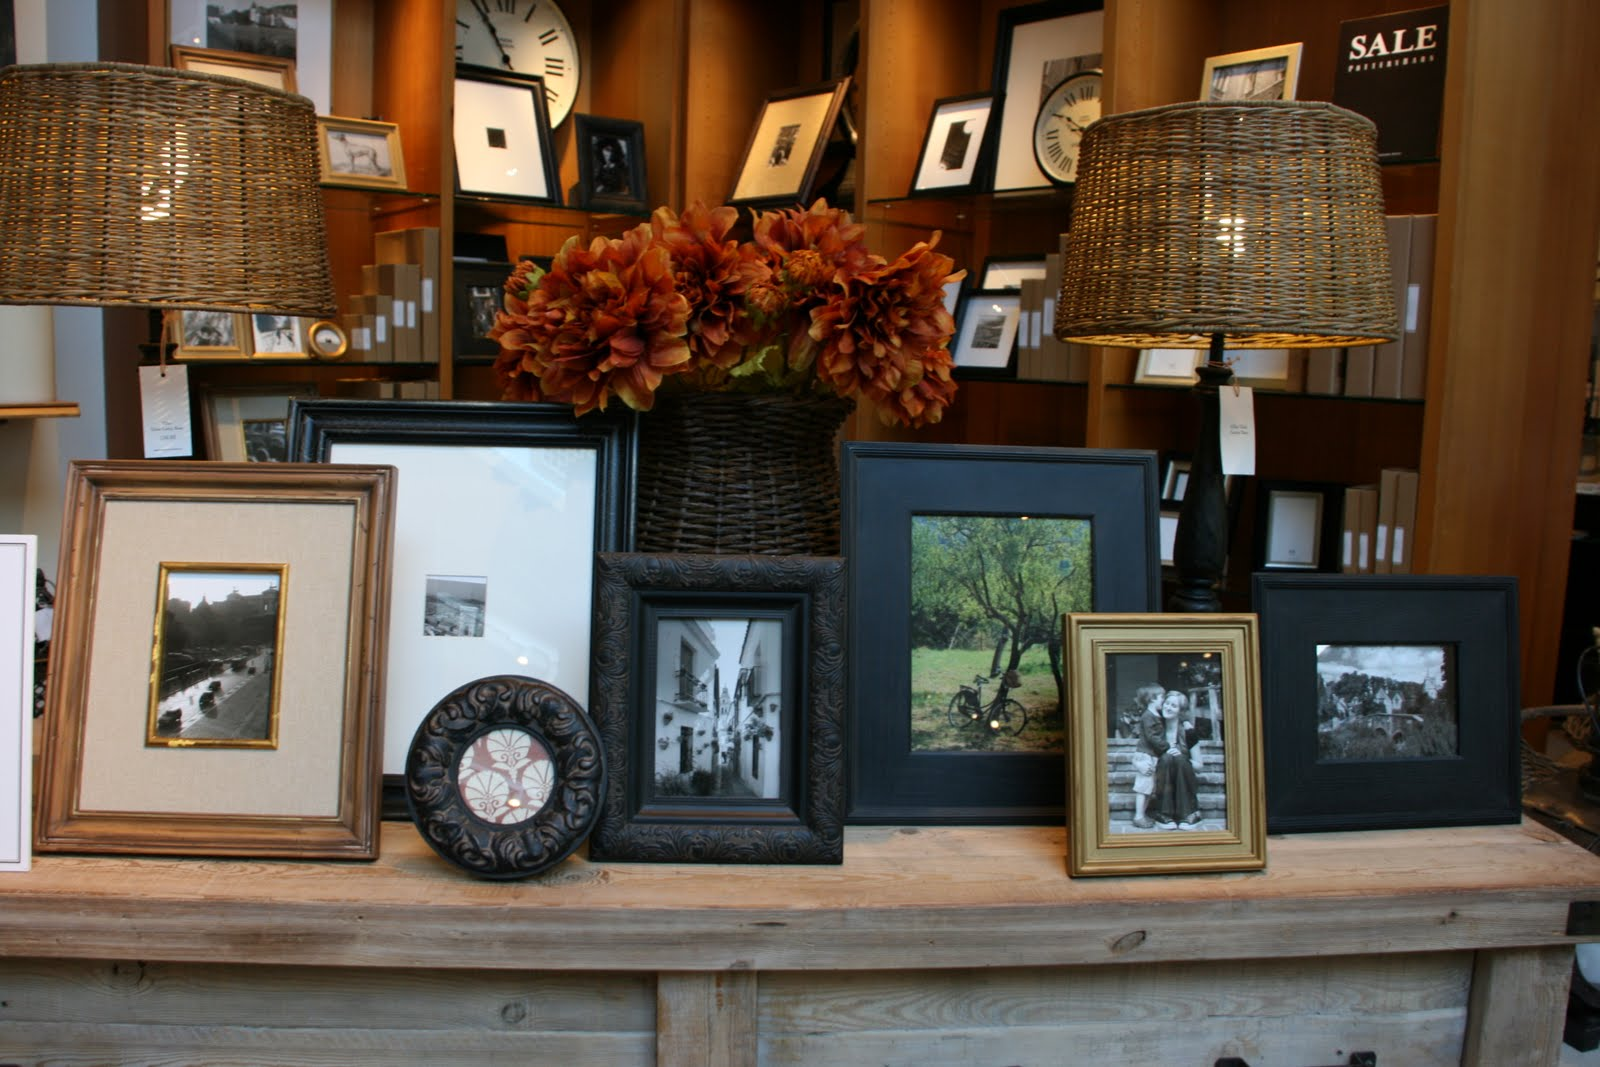 I Noticed That The Photo Display At Our Flagship Pottery Barn Store  Yesterday Had All The Frames Lined Up, Facing Straight.